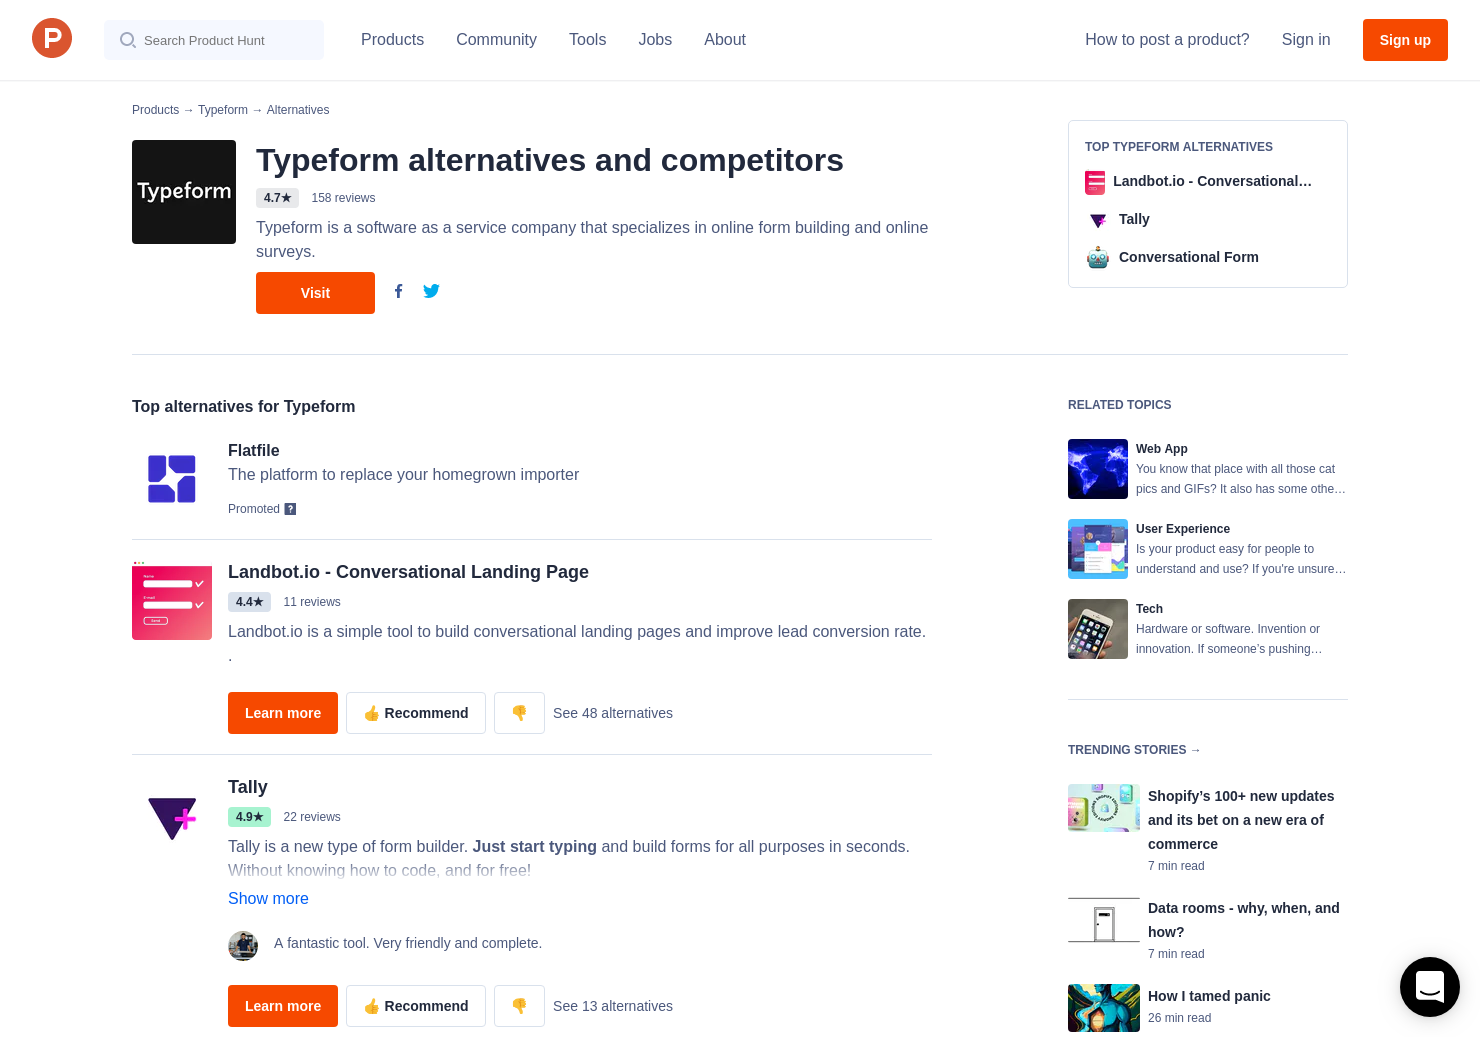 30 Alternatives to Typeform | Product Hunt